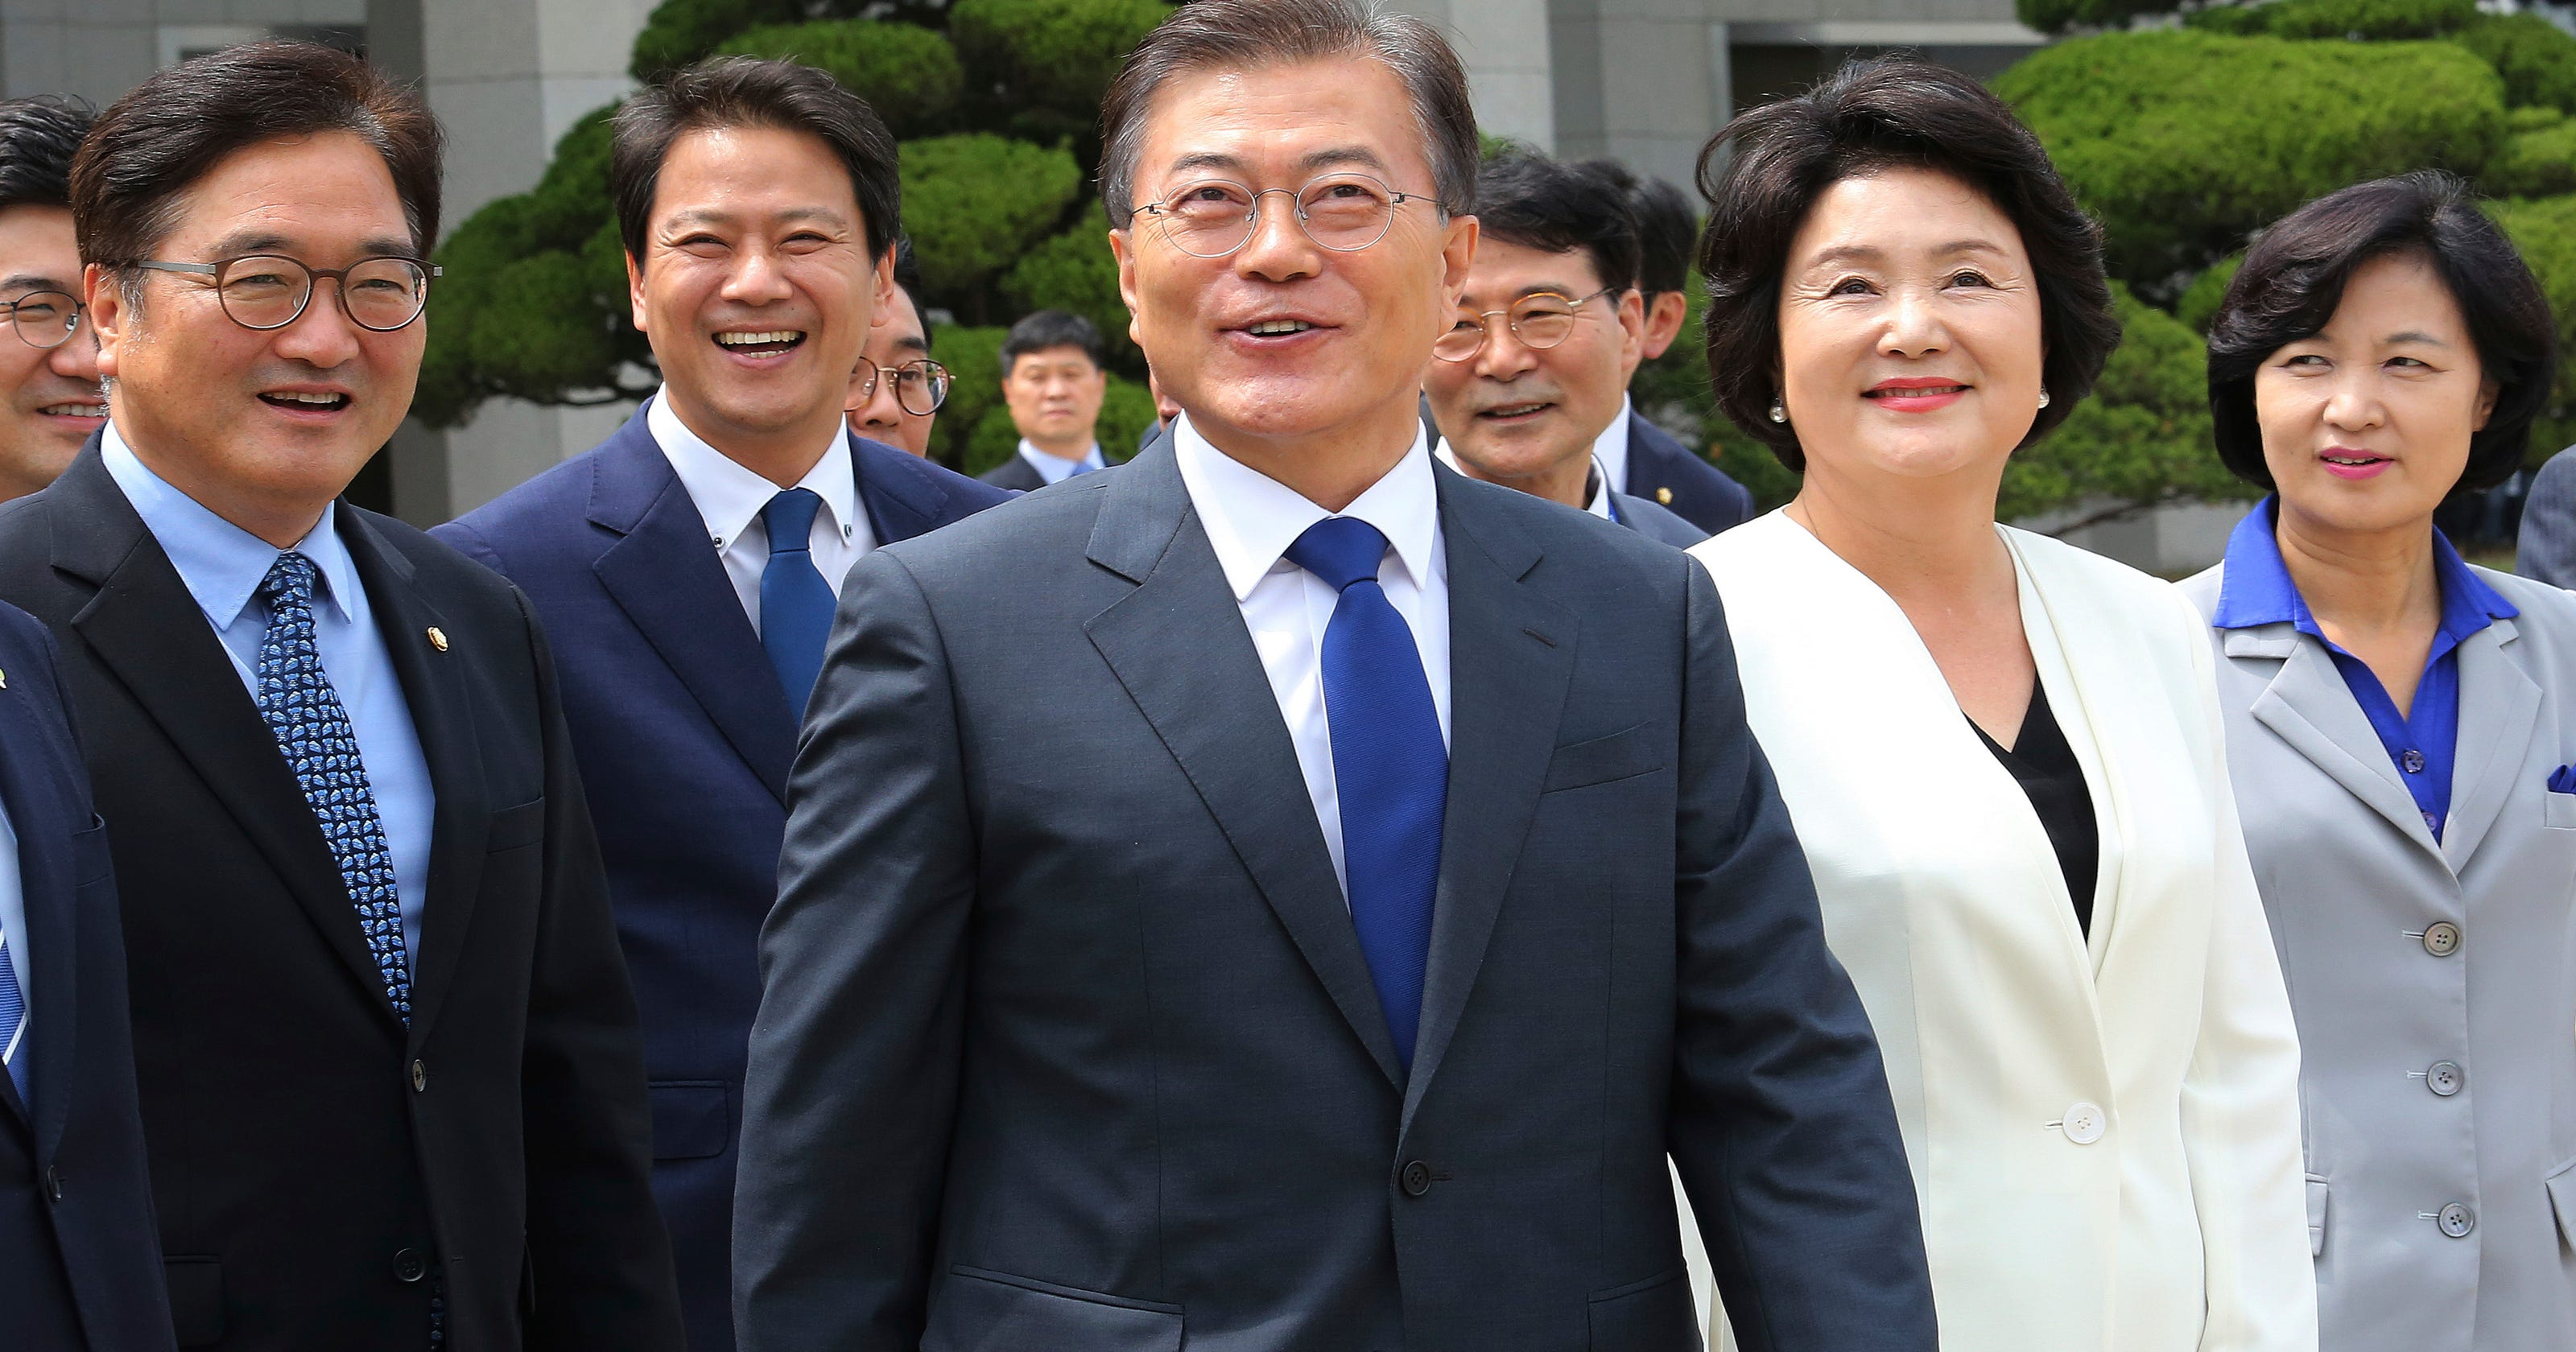 Trump Moon Jae In Finally Meet 5 Things To Know Thursday